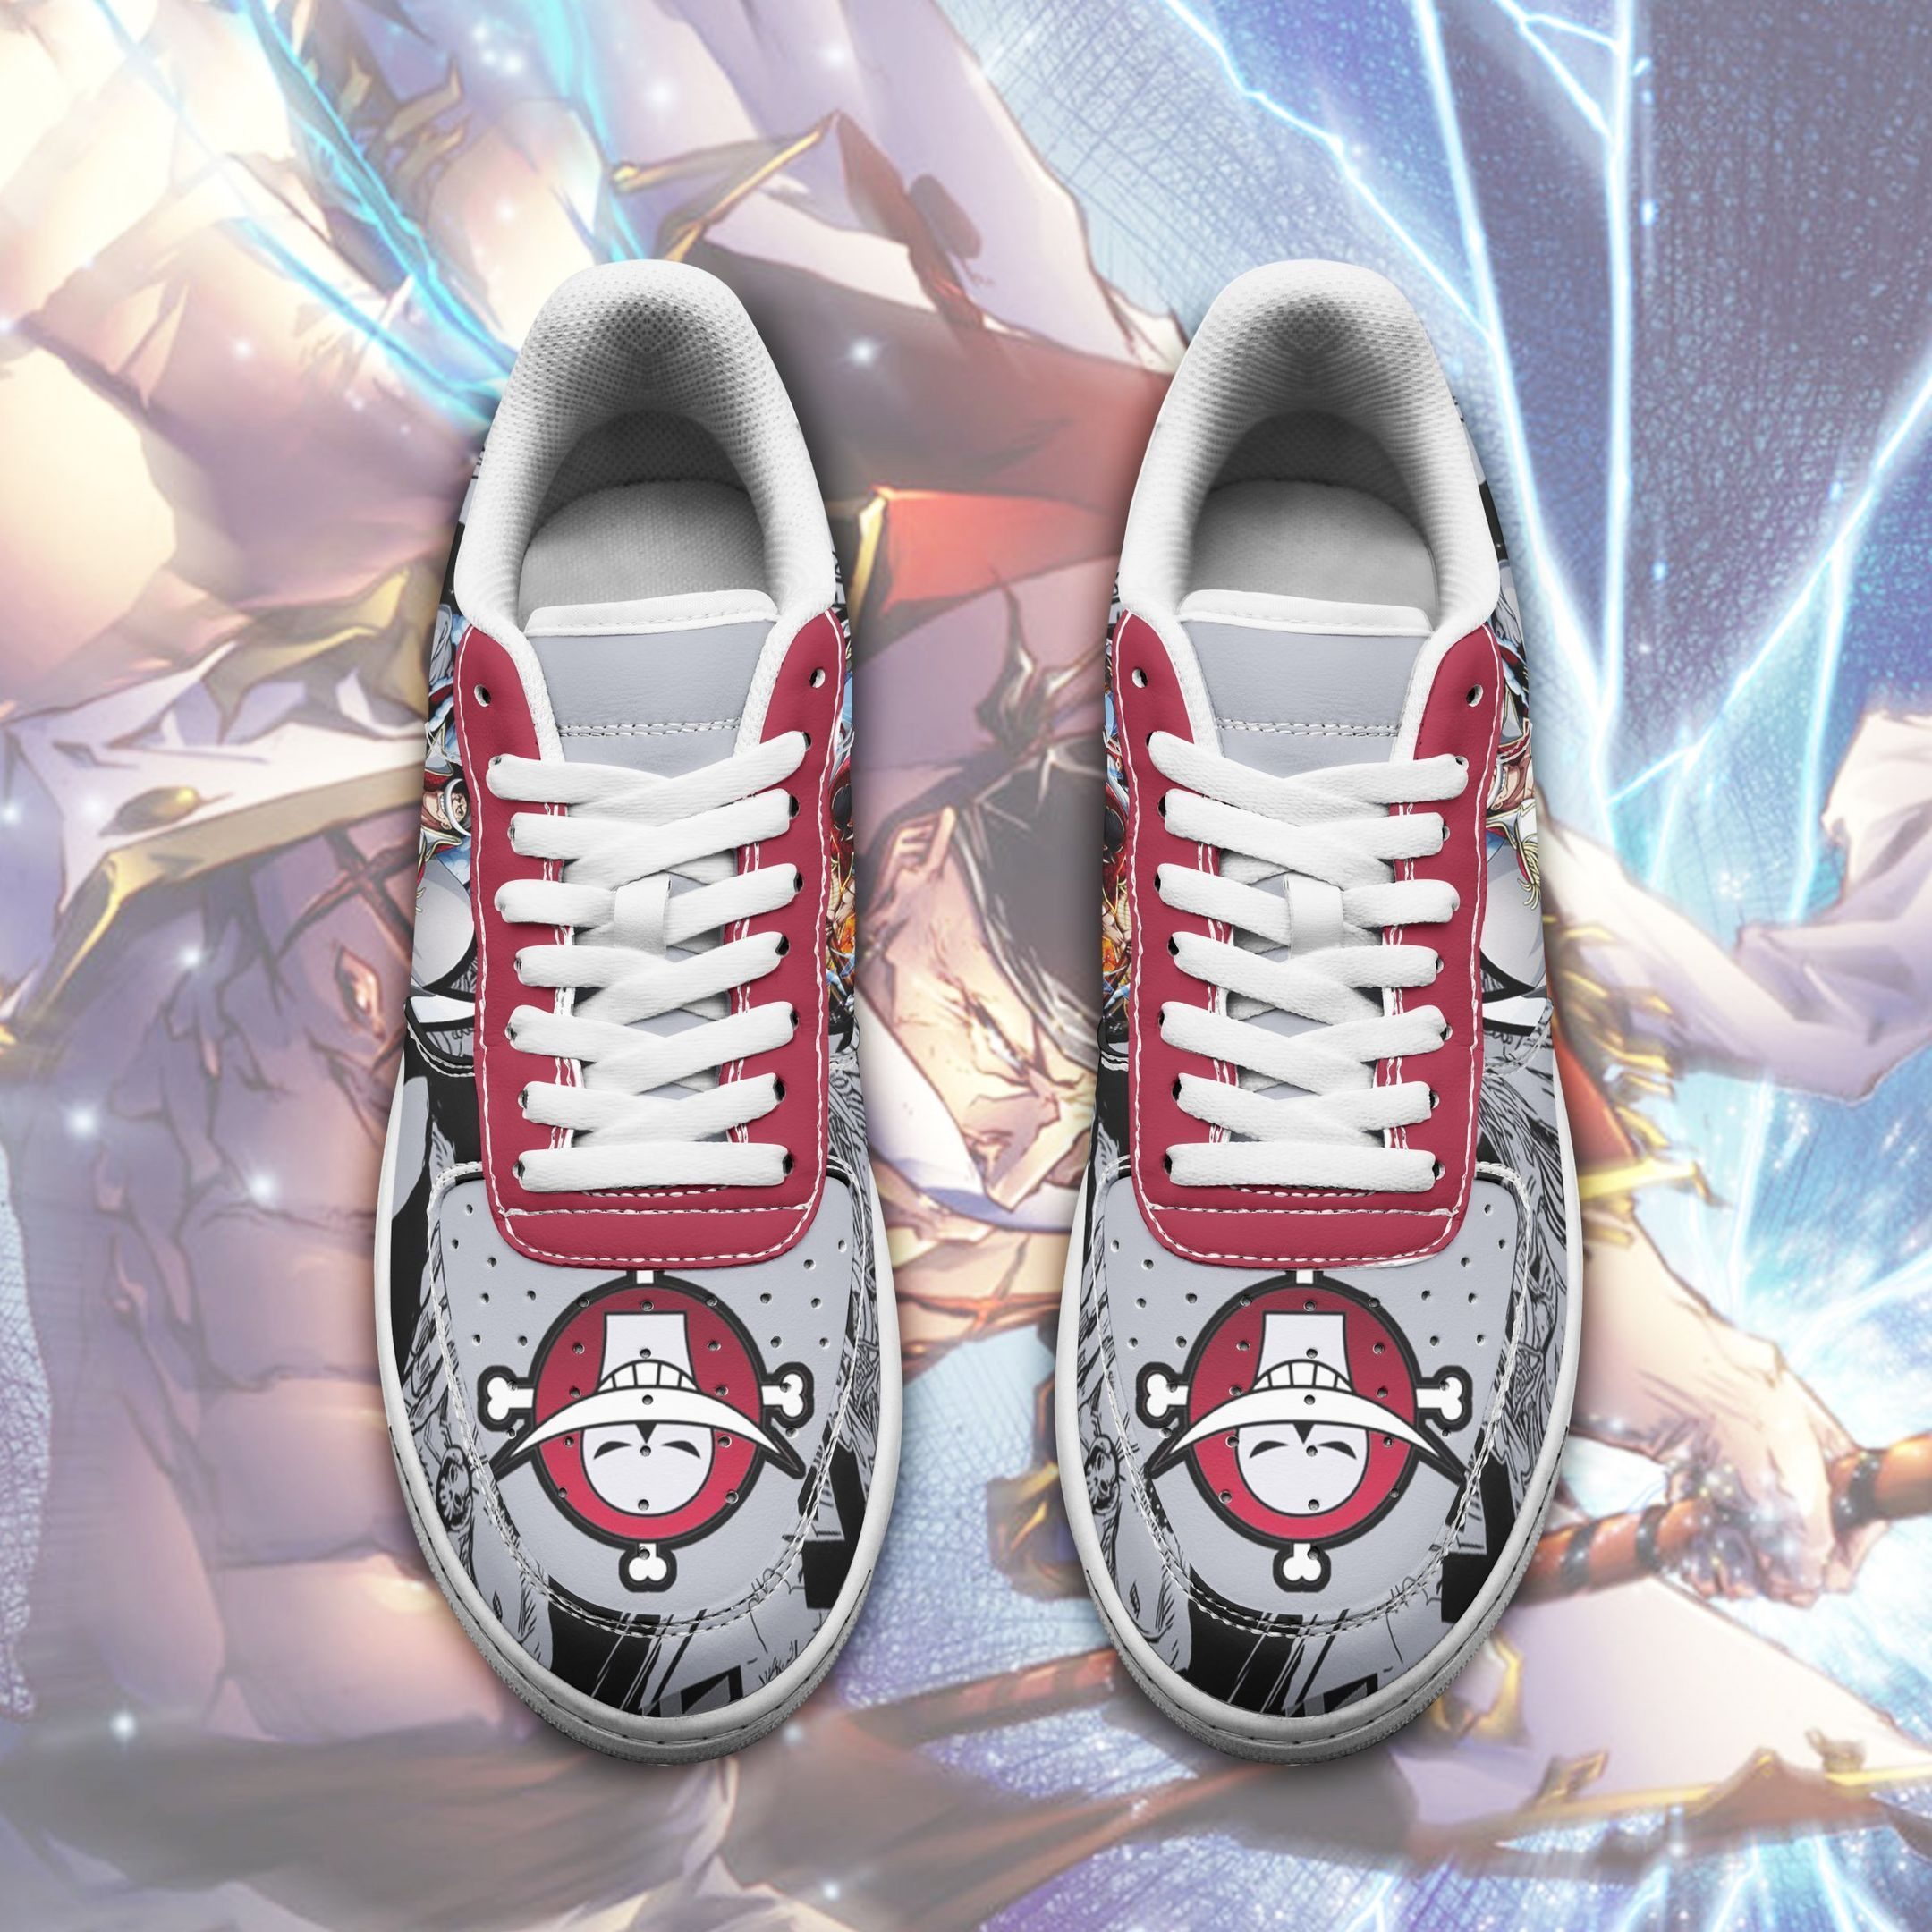 One Piece Whitebeard Air Shoes One Piece Anime Shoes GO1012